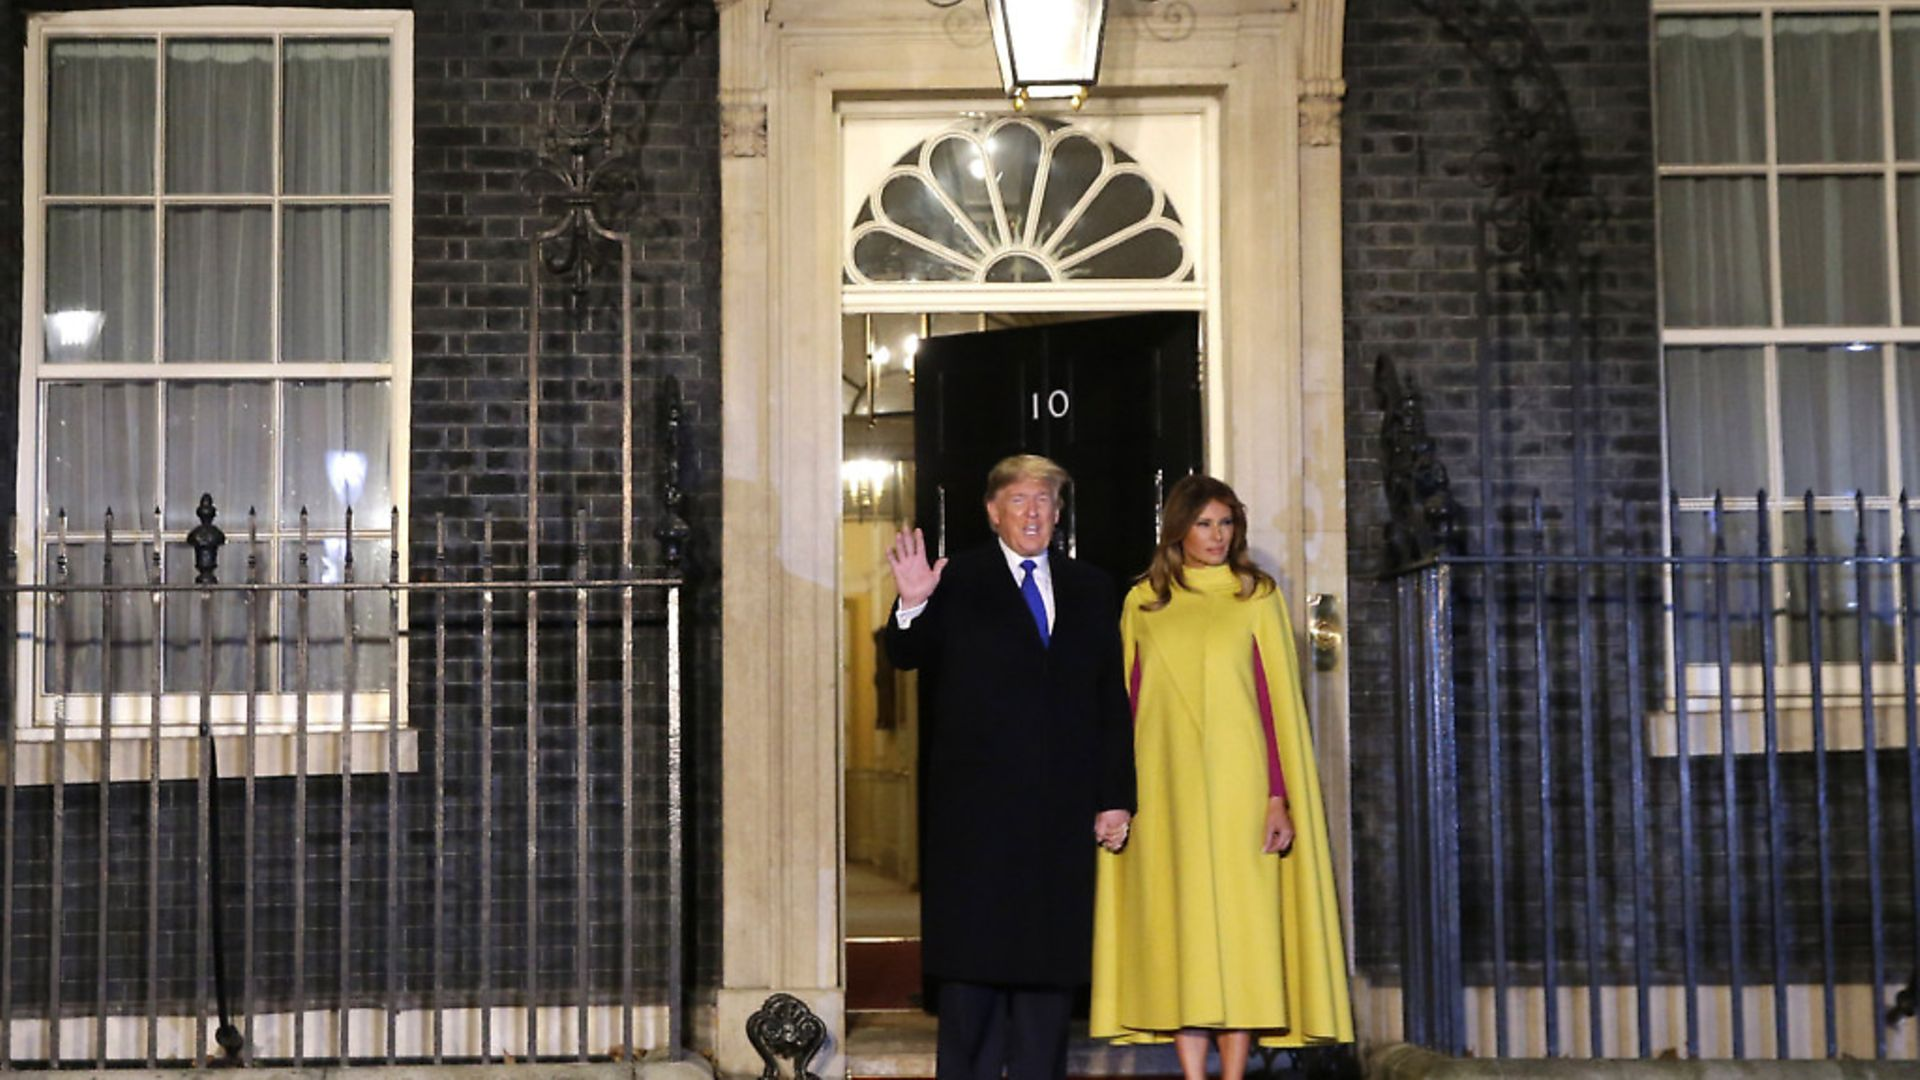 U.S. President Donald Trump and first lady Melania arriving at 10 Downing Street. Photograph: Alastair Grant/PA. - Credit: PA